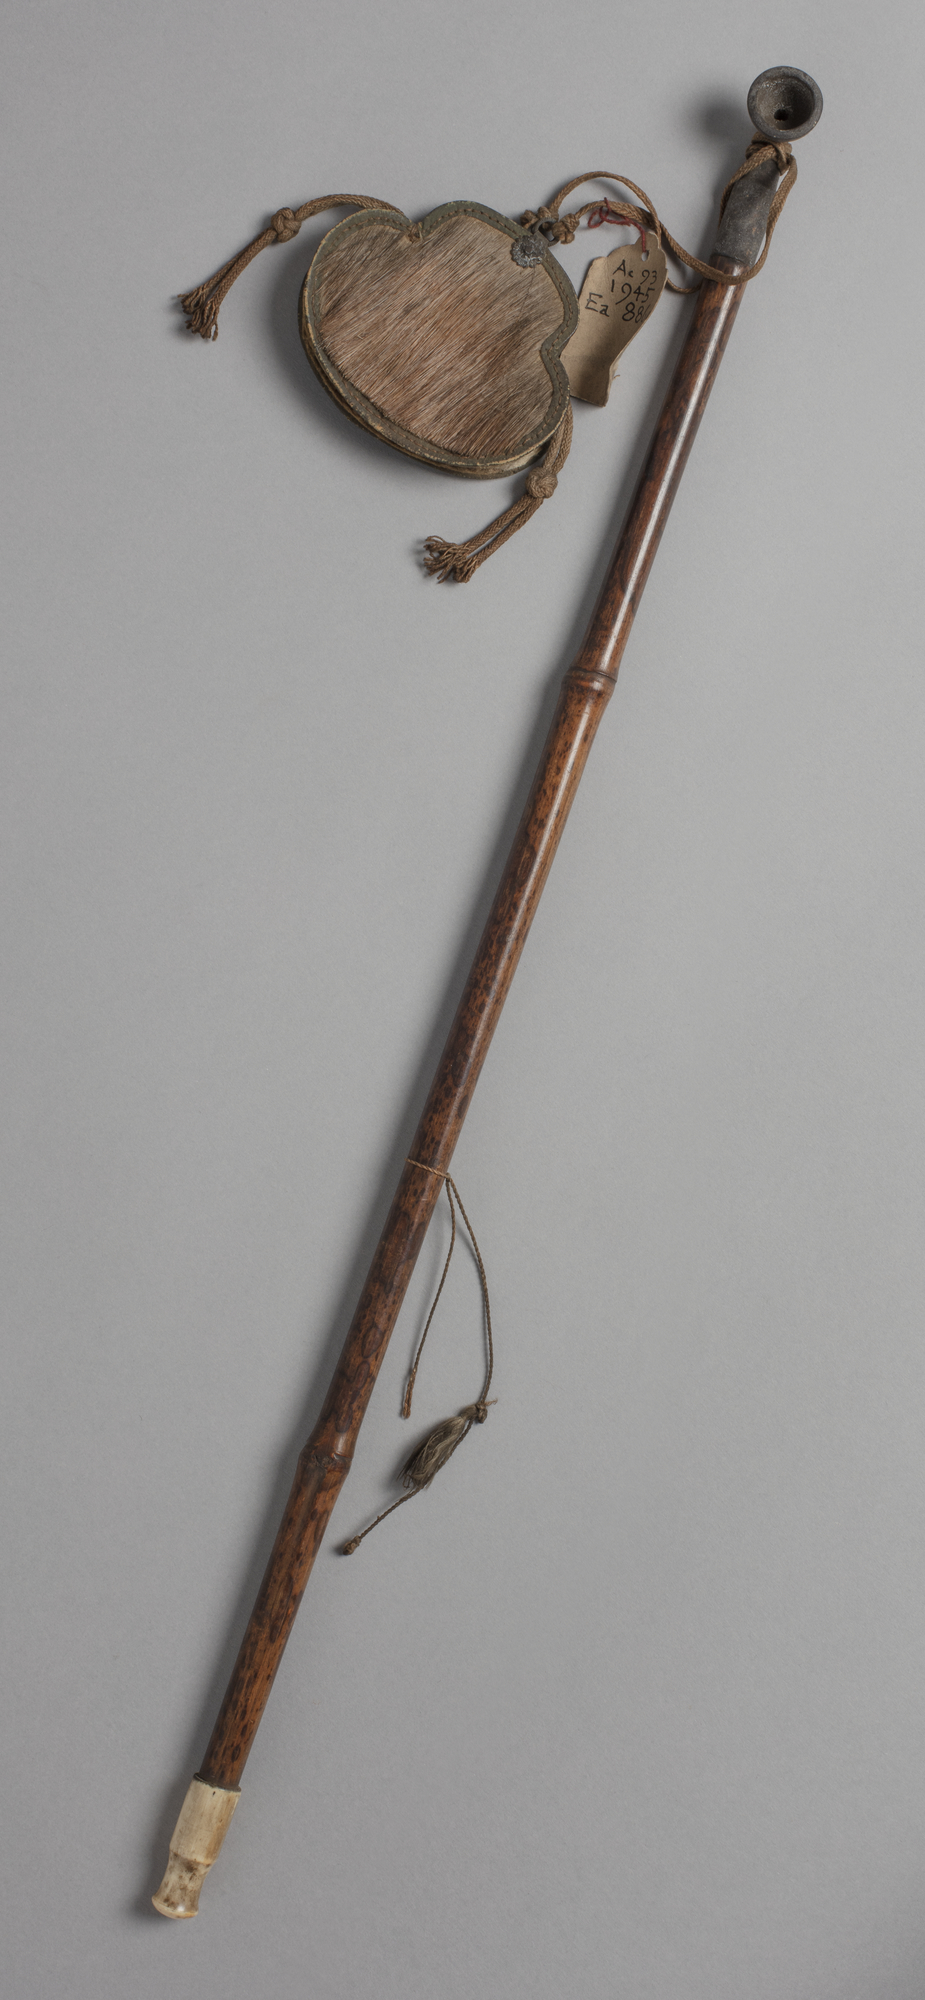 A Japanese tobacco pipe with small bowl attached to a tobacco pouch made of deer hide.